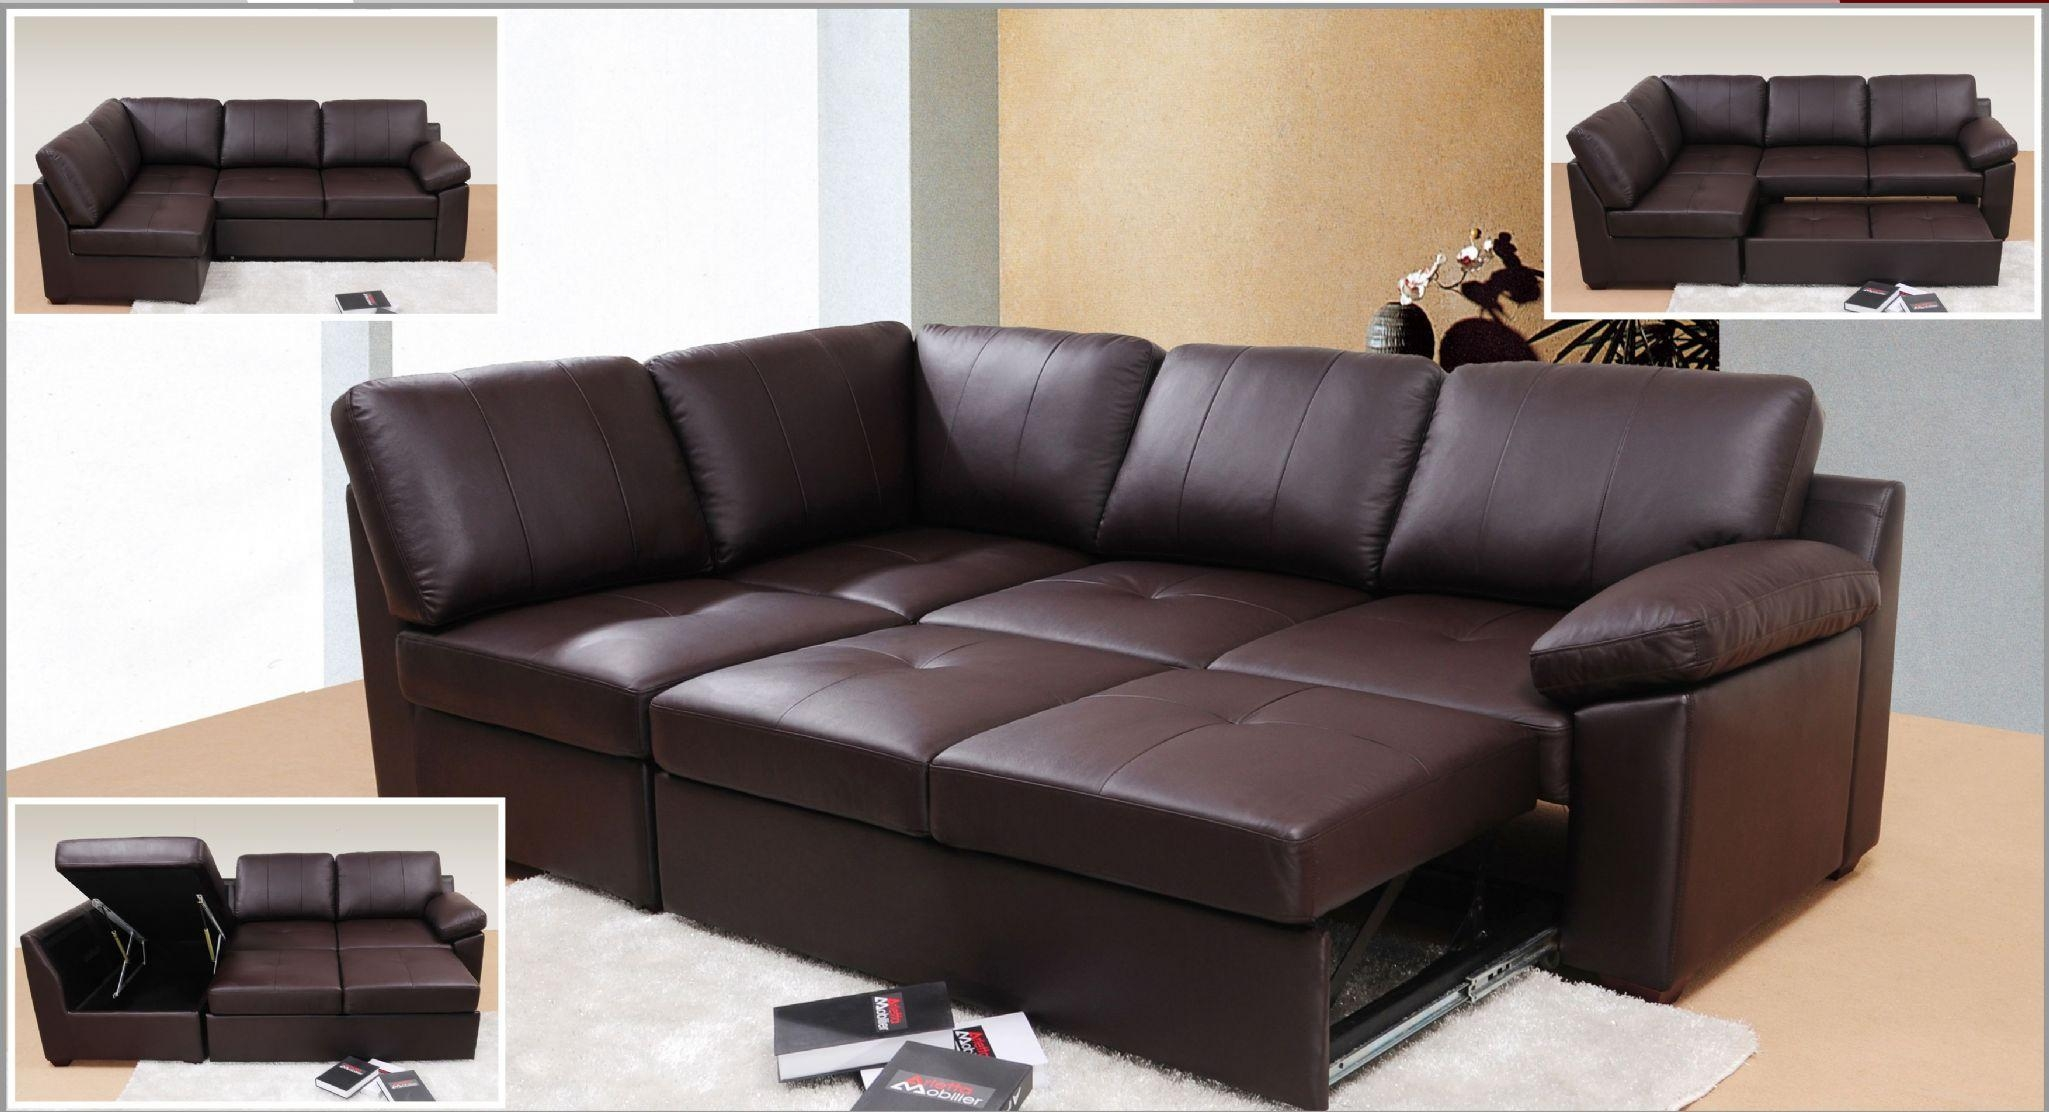 Corner Unit Sofa Beds With Storage   Centerfieldbar Intended For Sofa Corner Units (View 8 of 24)